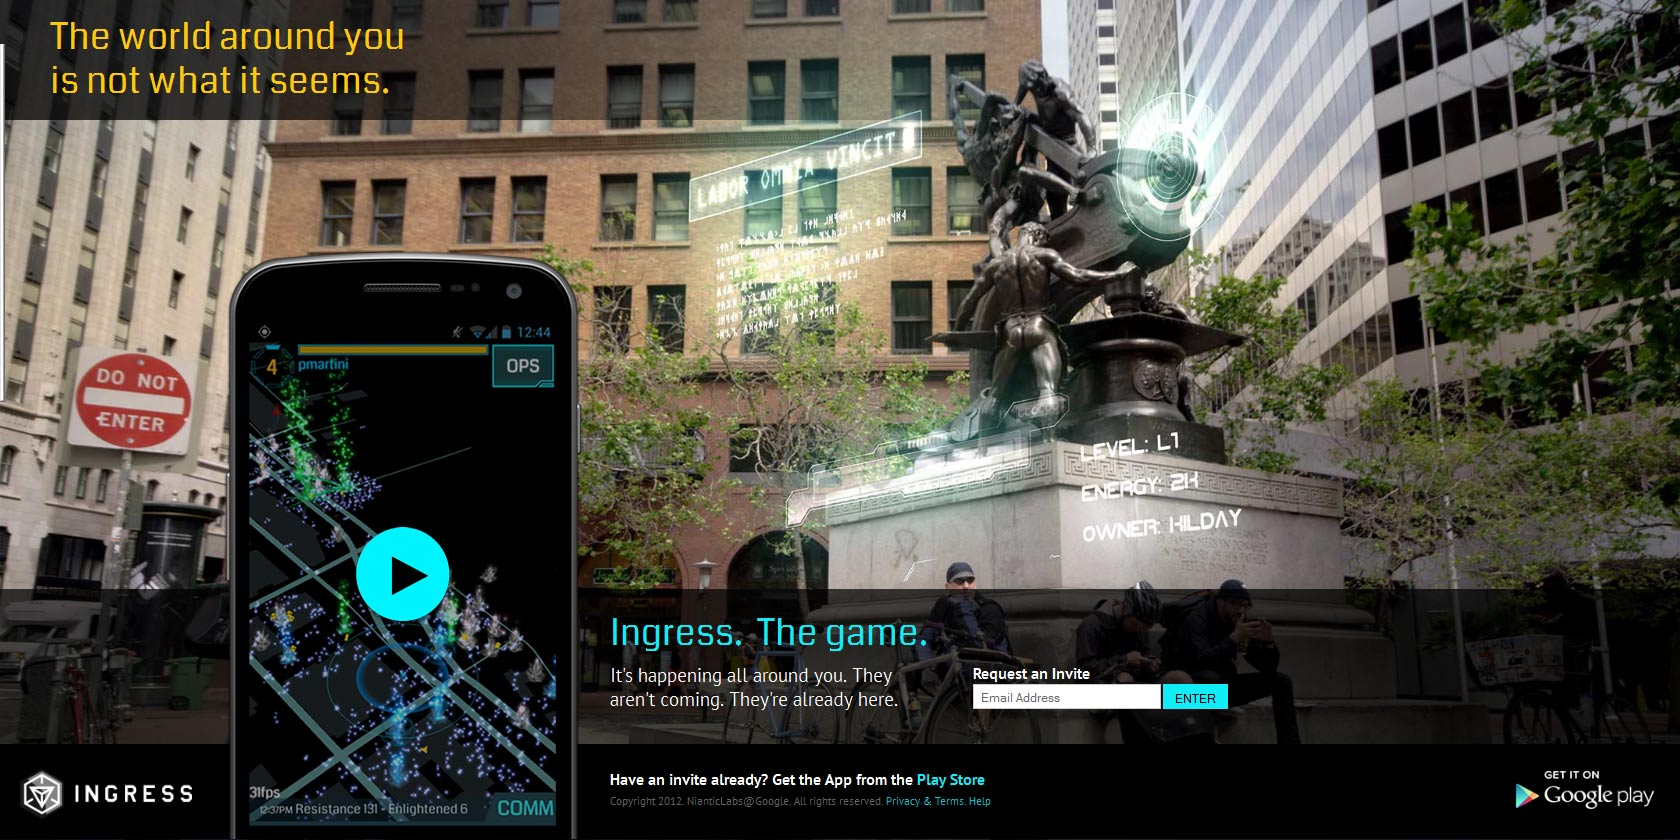 Google Gamification Using Ingress to generate Brand Pull